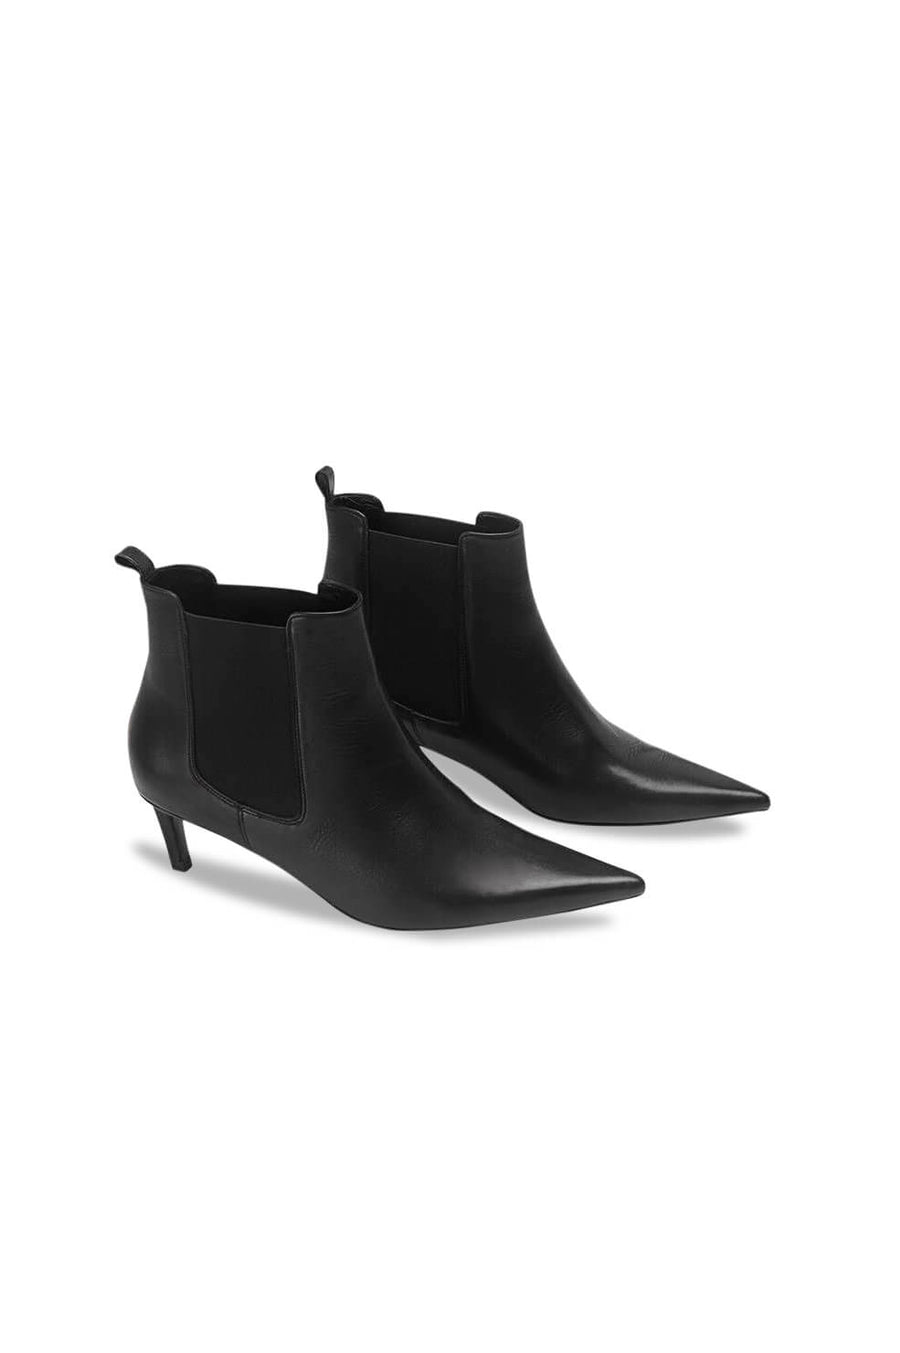 Anine Bing Stevie Boot in Black from The New Trend